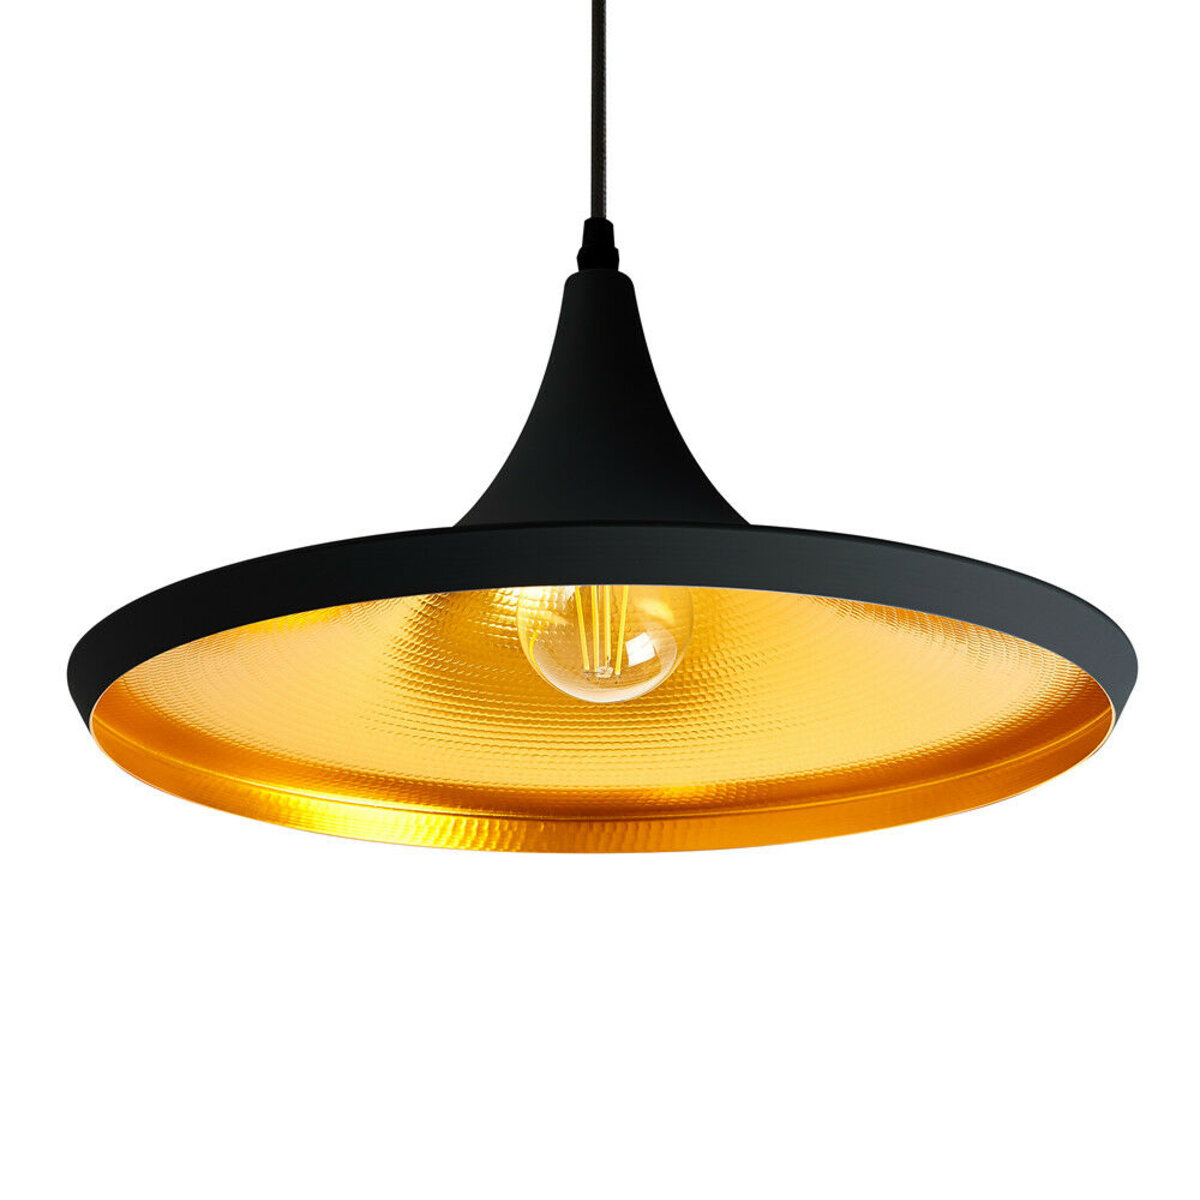 Details About Pendant Light Led Ceiling Lights Lamp Shade Industrial Cafe Lighting Kitchen Bar Pertaining To Akash Industrial Vintage 1 Light Geometric Pendants (View 4 of 30)